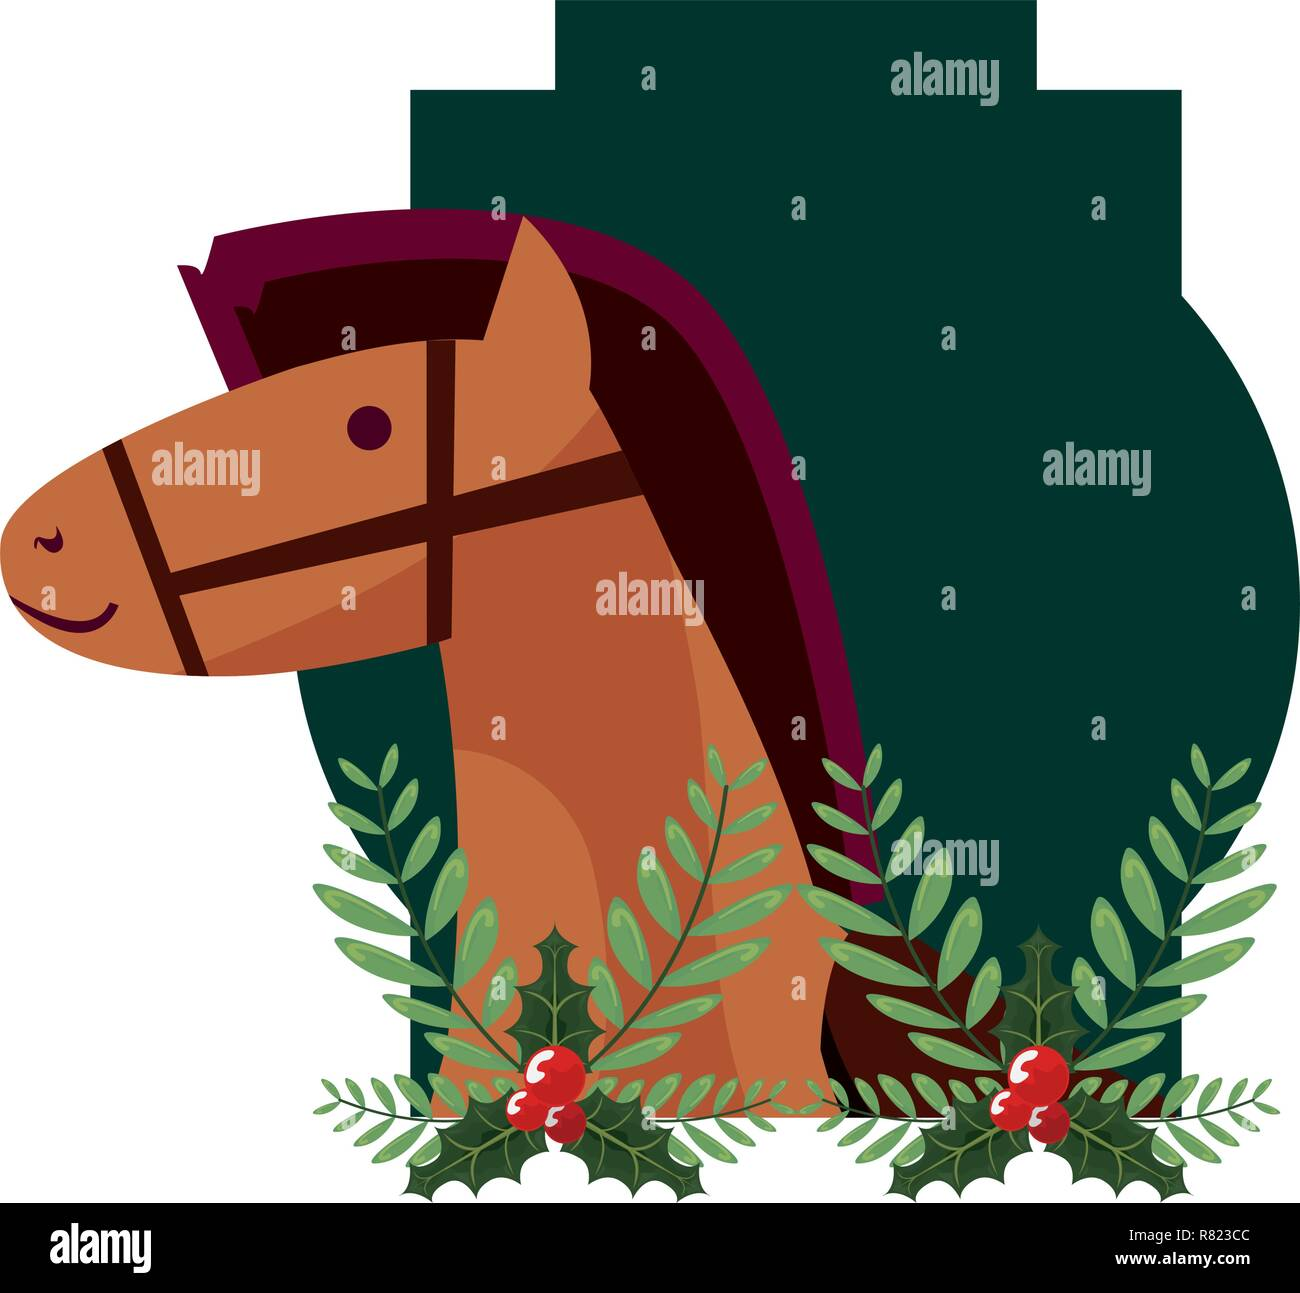 Christmas Horse Leaves Decoration Label Vector Illustration Stock Vector Image Art Alamy